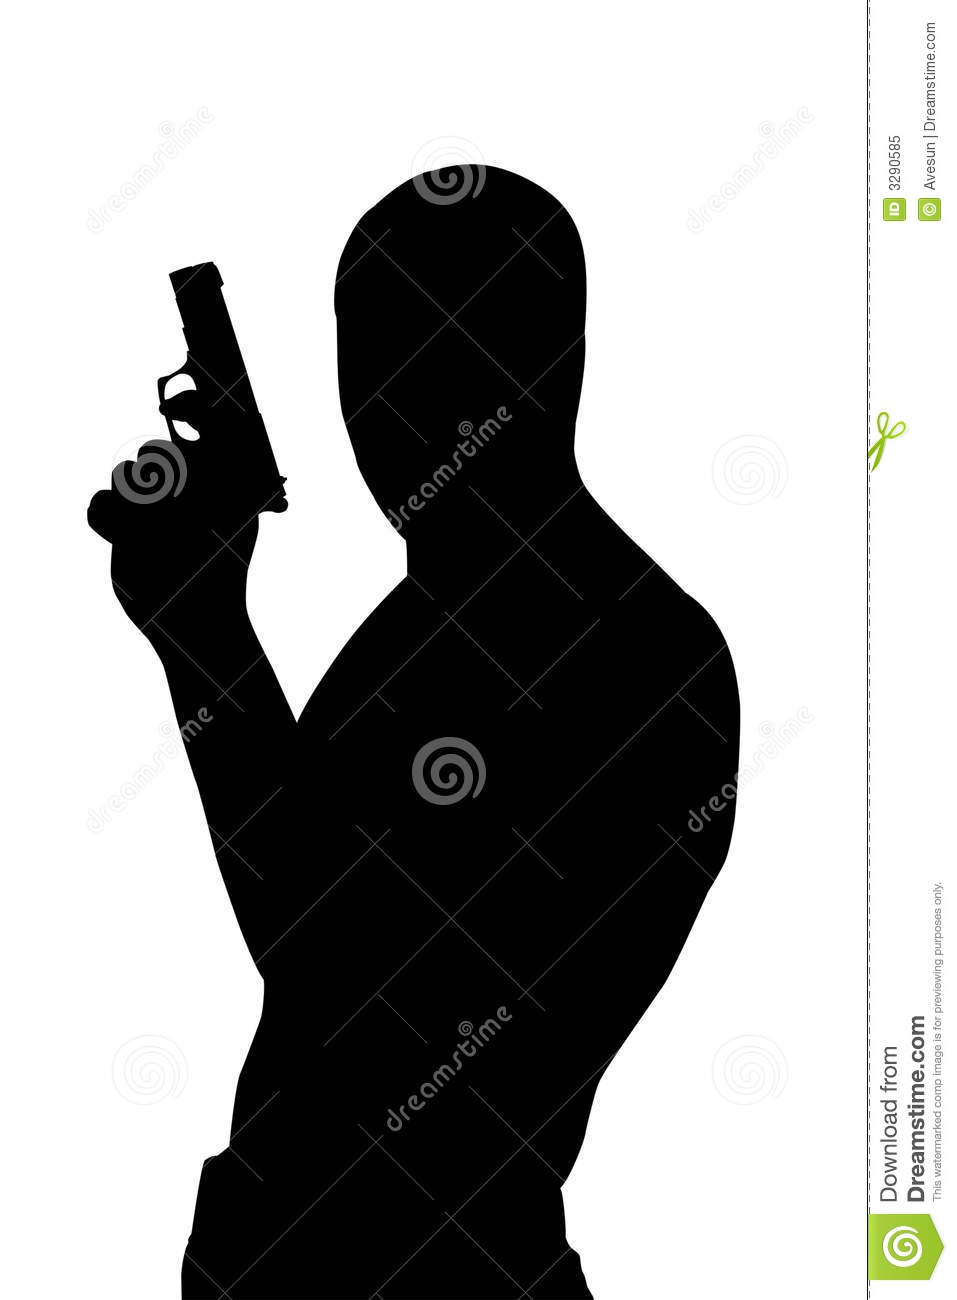 Gangster Silhouette Royalty Free Stock Photo Image 3290585